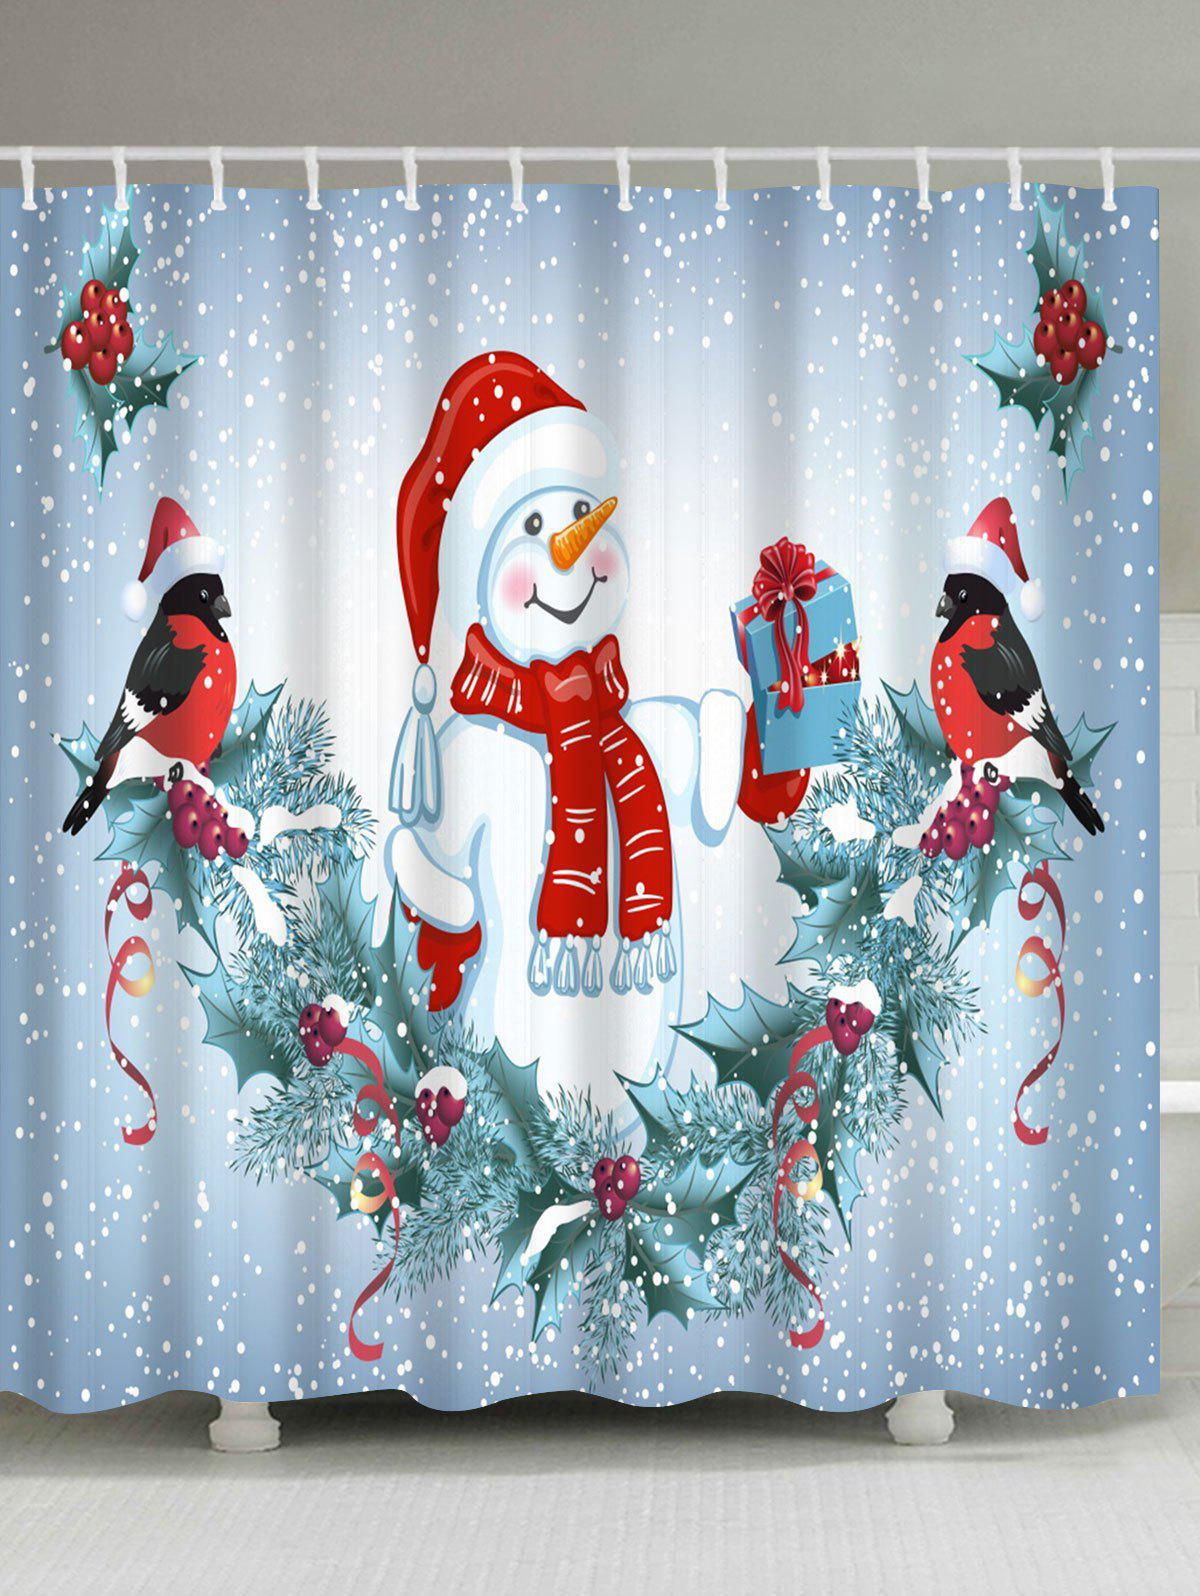 Christmas Snowman Birds Print Waterproof Bathroom Shower CurtainHOME<br><br>Size: W71 INCH * L71 INCH; Color: COLORMIX; Products Type: Shower Curtains; Materials: Polyester; Pattern: Snowman; Style: Festival; Number of Hook Holes: W59 inch*L71 inch: 10; W71 inch*L71 inch: 12; W71 inch*L79 inch: 12; Package Contents: 1 x Shower Curtain 1 x Hooks (Set);